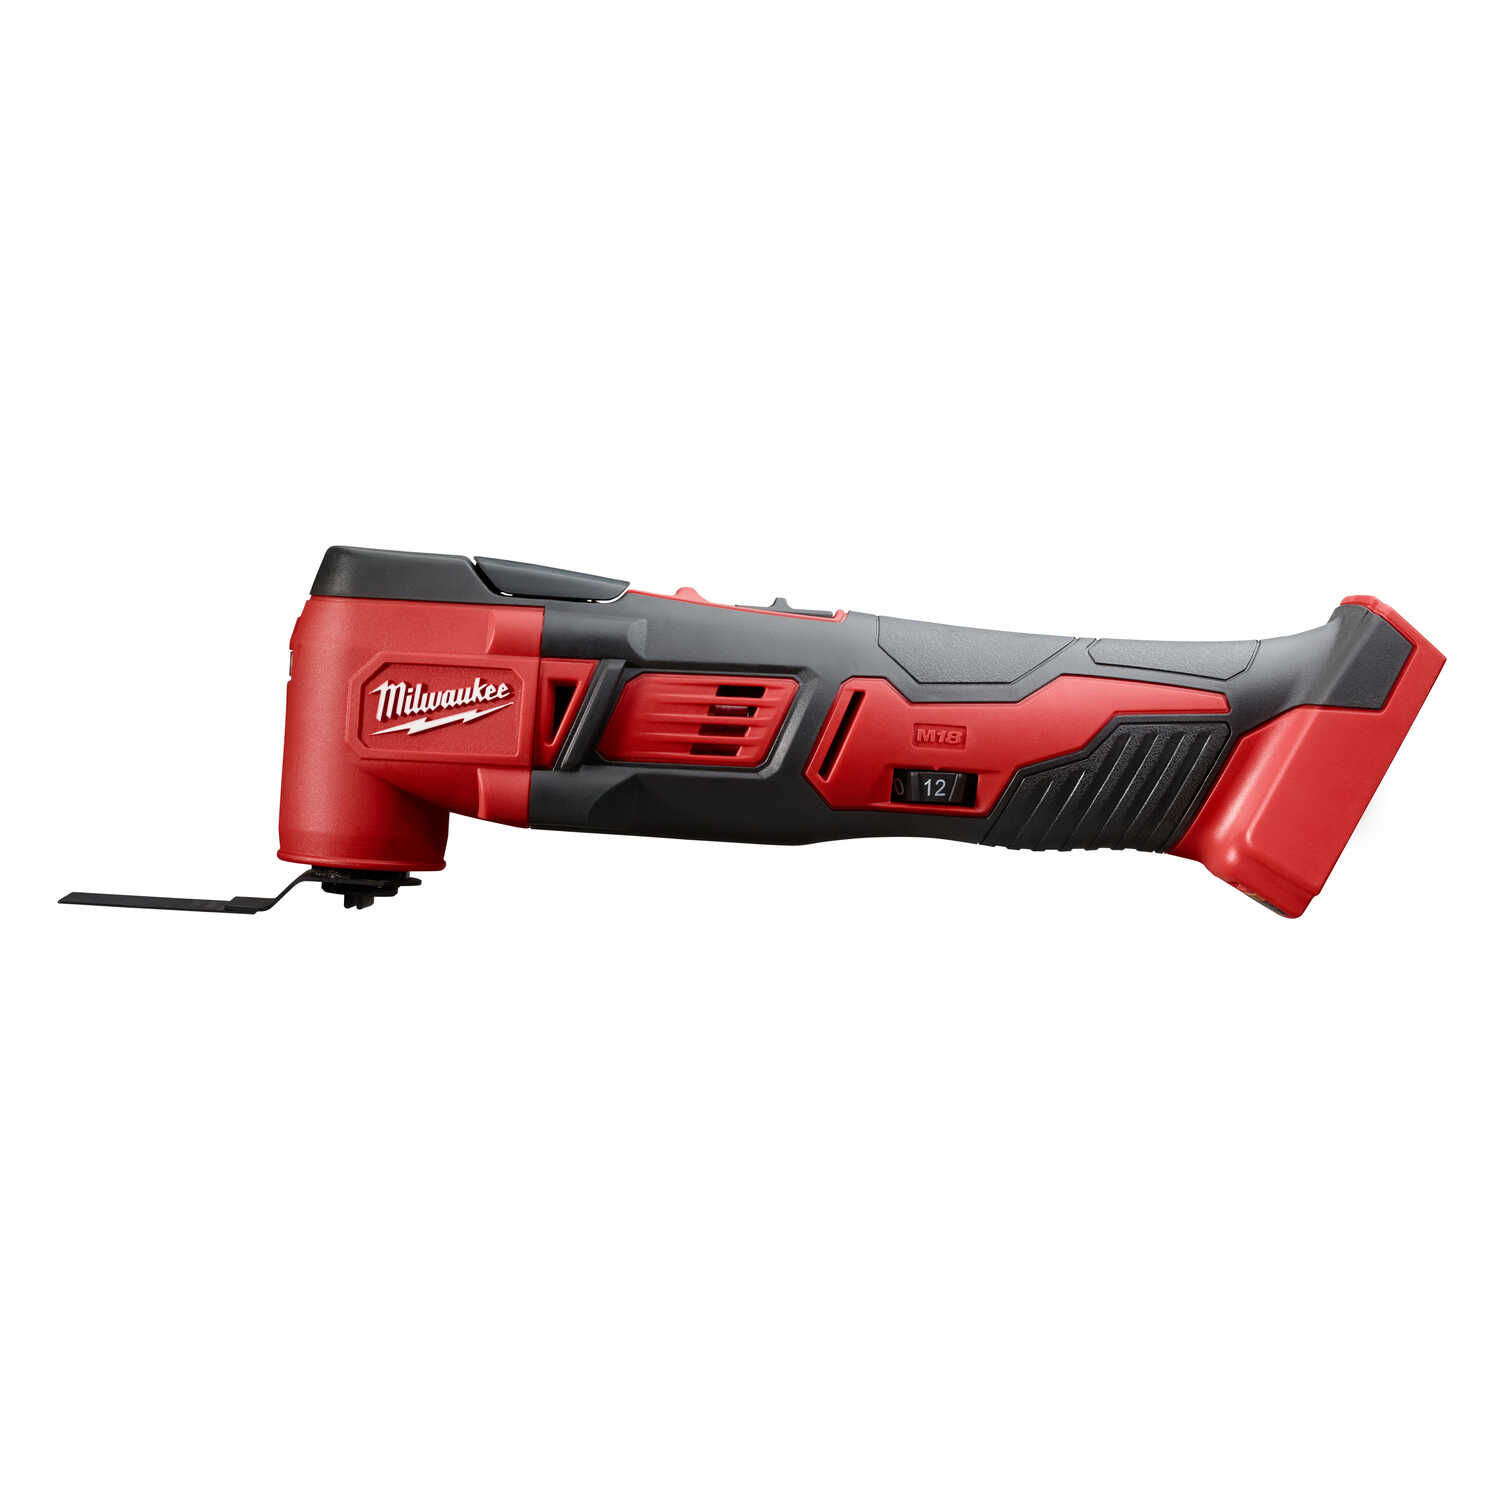 Milwaukee  M18  18 volt Cordless  Oscillating Multi-Tool  18000 opm Red  1 pc.